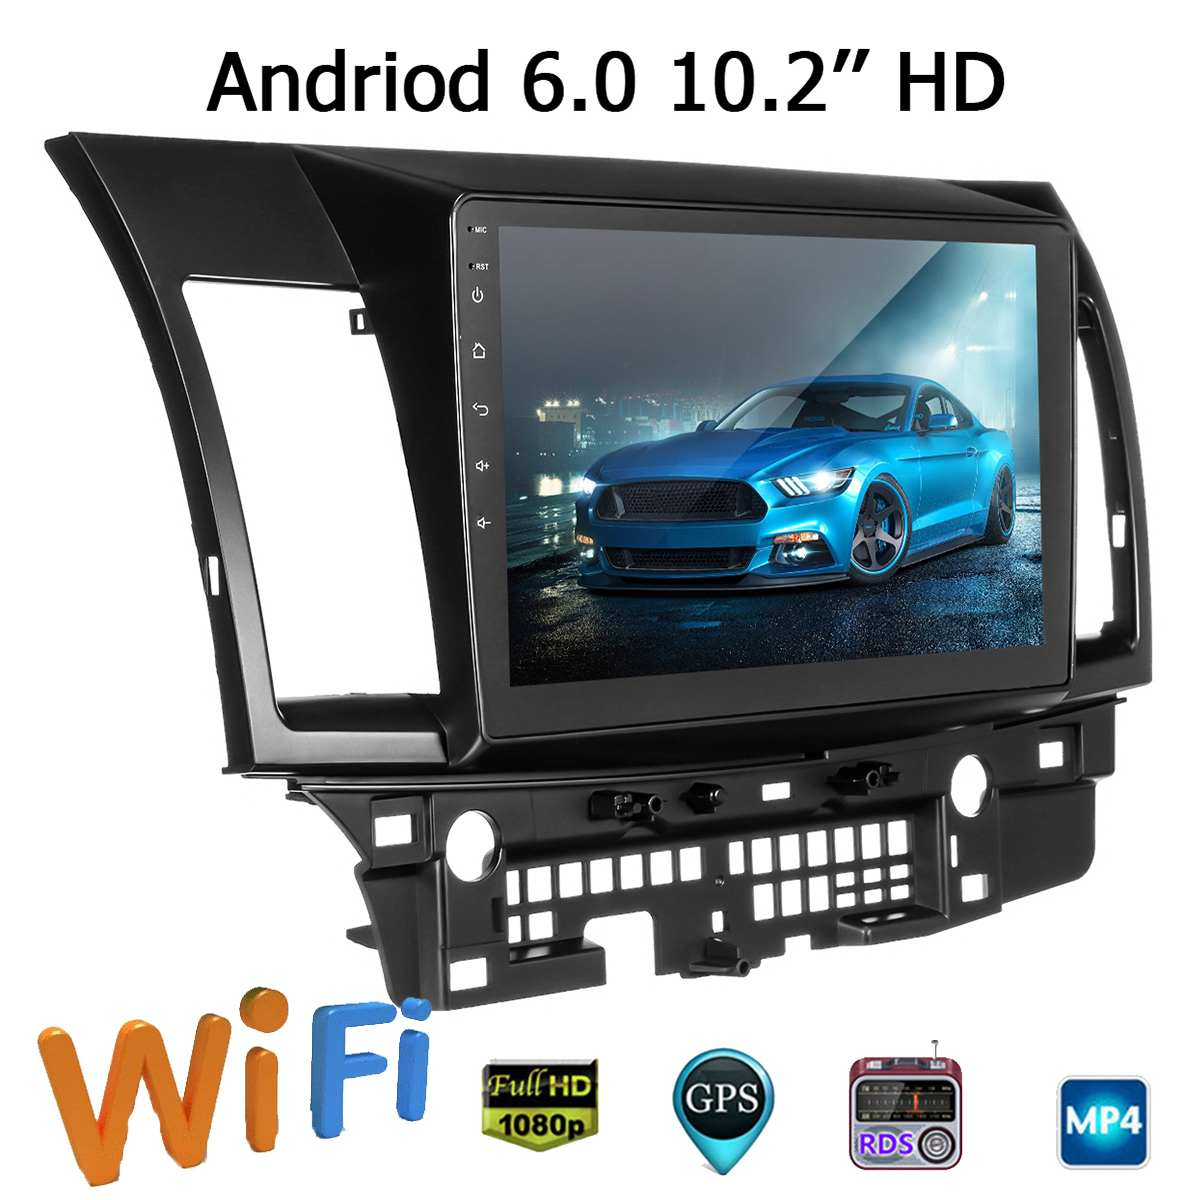 10.2 Inch Two-strand for Android 6.0 Car Media Player Car GPS MP5 MP3 Stereo Navigation Radio Player For Mitsubishi for Lancer